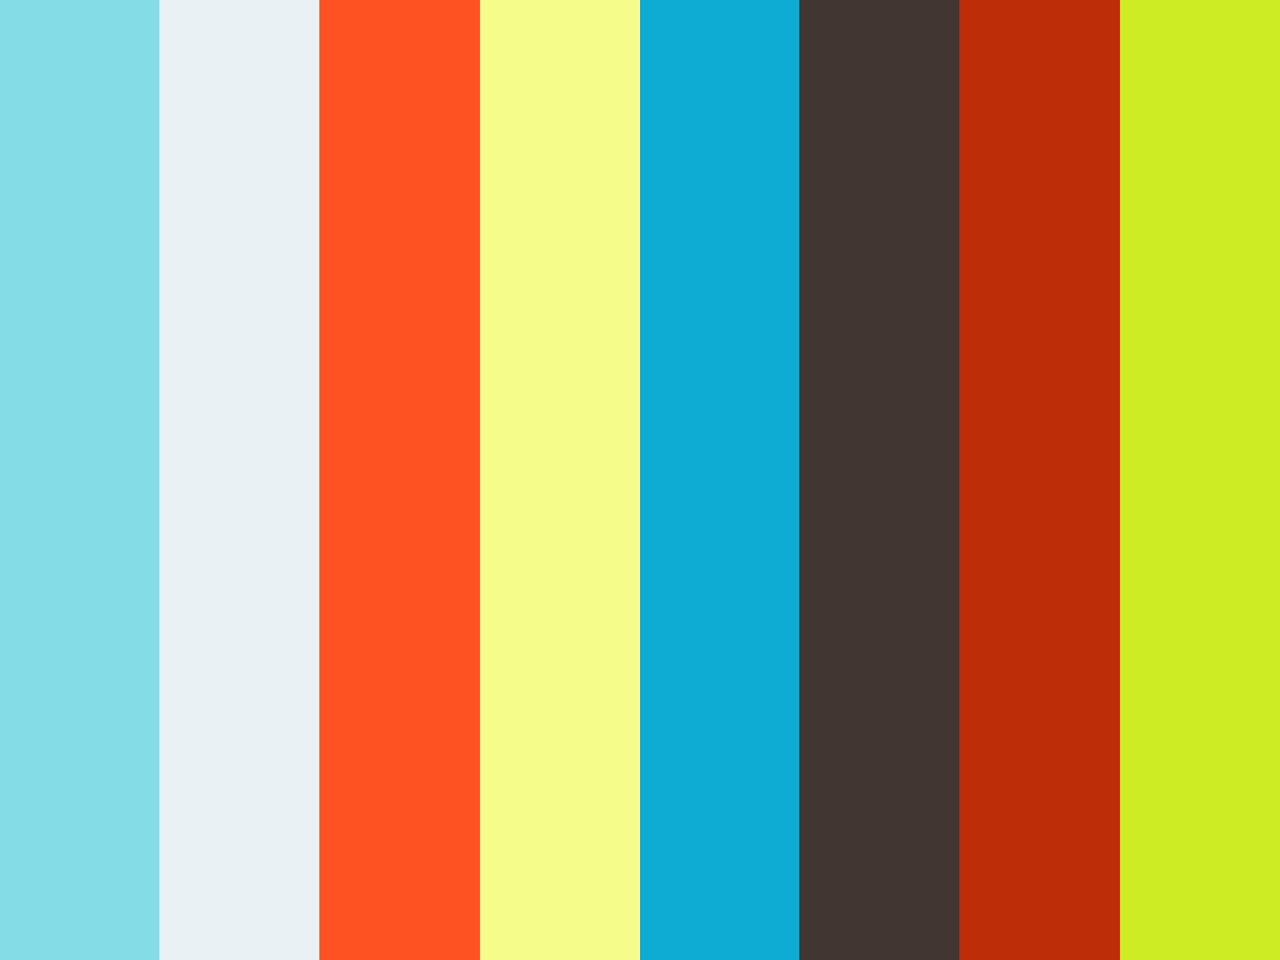 d1_460_-_1630_-_In_a_World_Without_Bartik_Providing_Clients_with_a_Theme_Independent_Color_Picker_-_Richard_Hodges on Vimeo